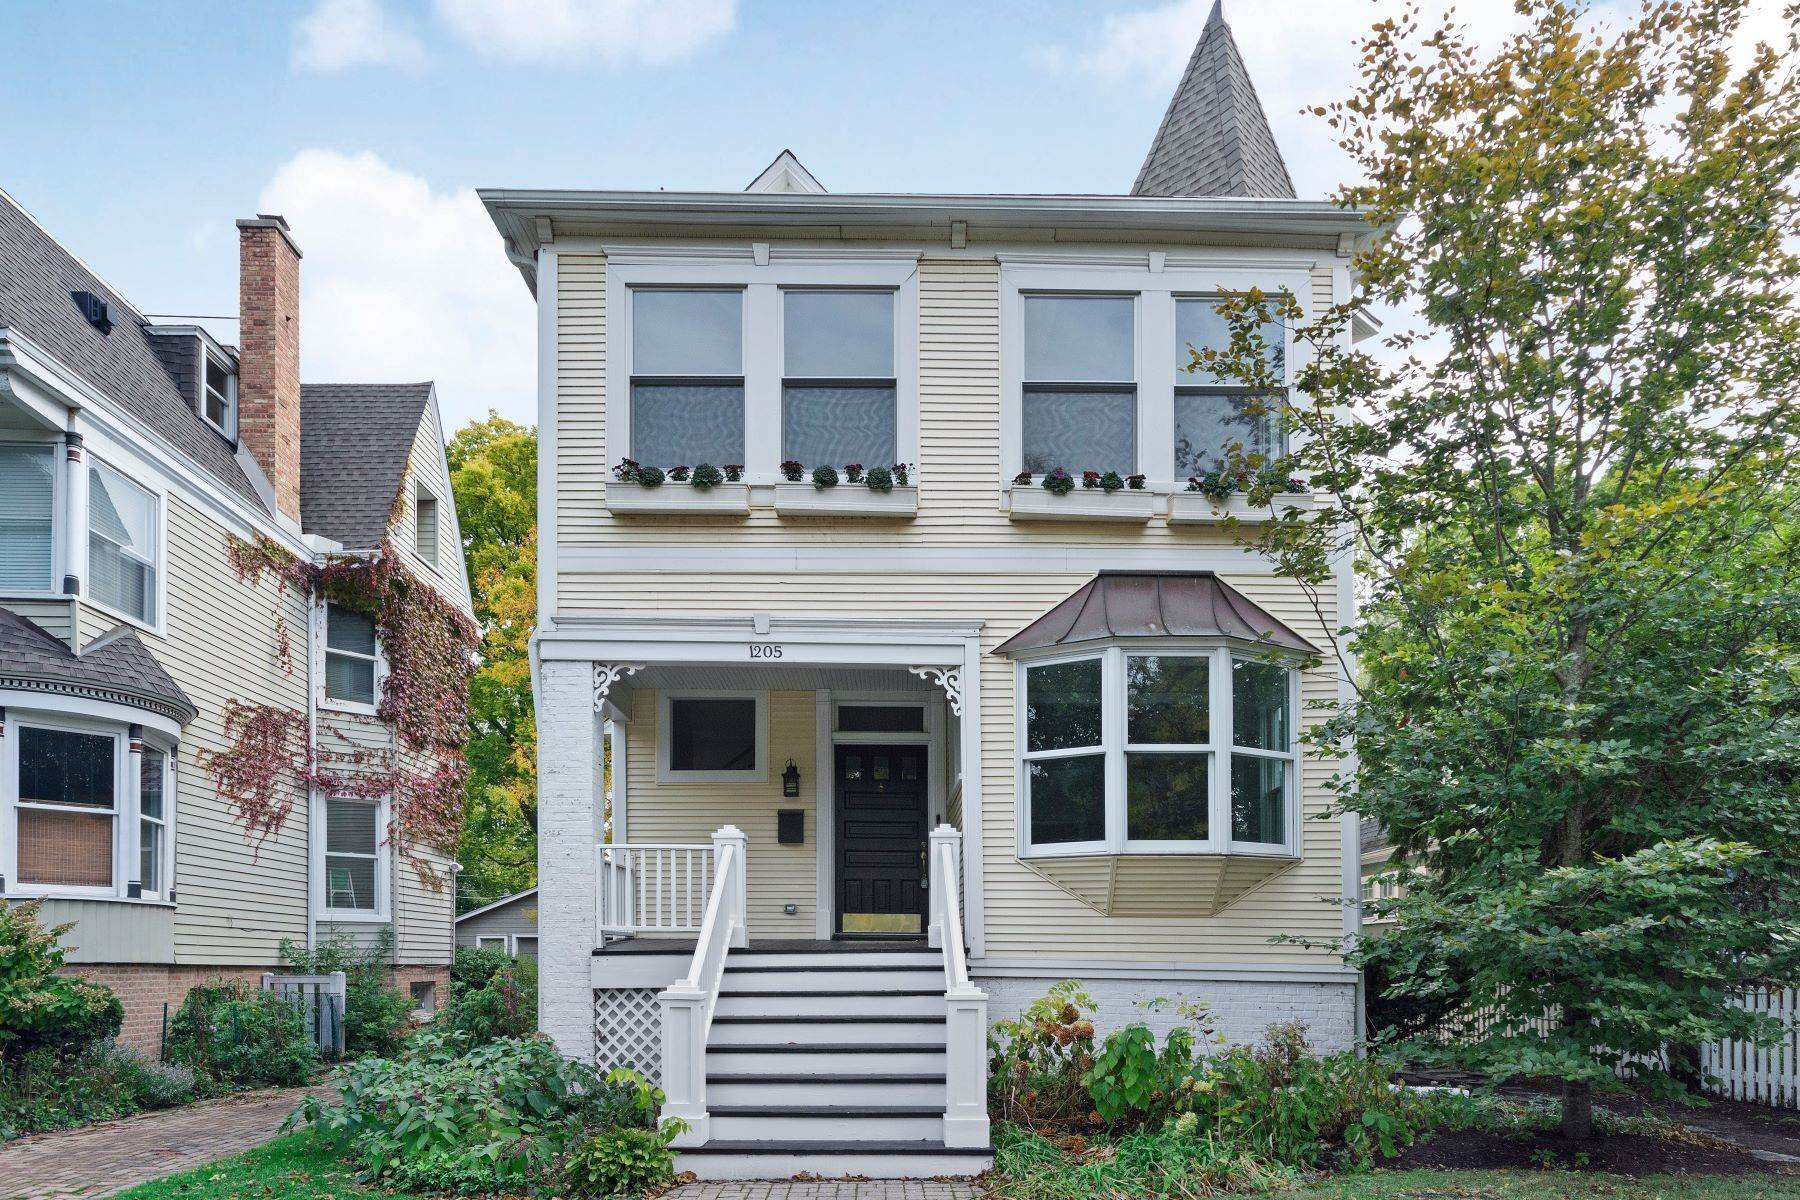 Single Family Homes for Sale at Stunning Victorian in Premier Evanston Location 1205 Judson Avenue Evanston, Illinois 60202 United States